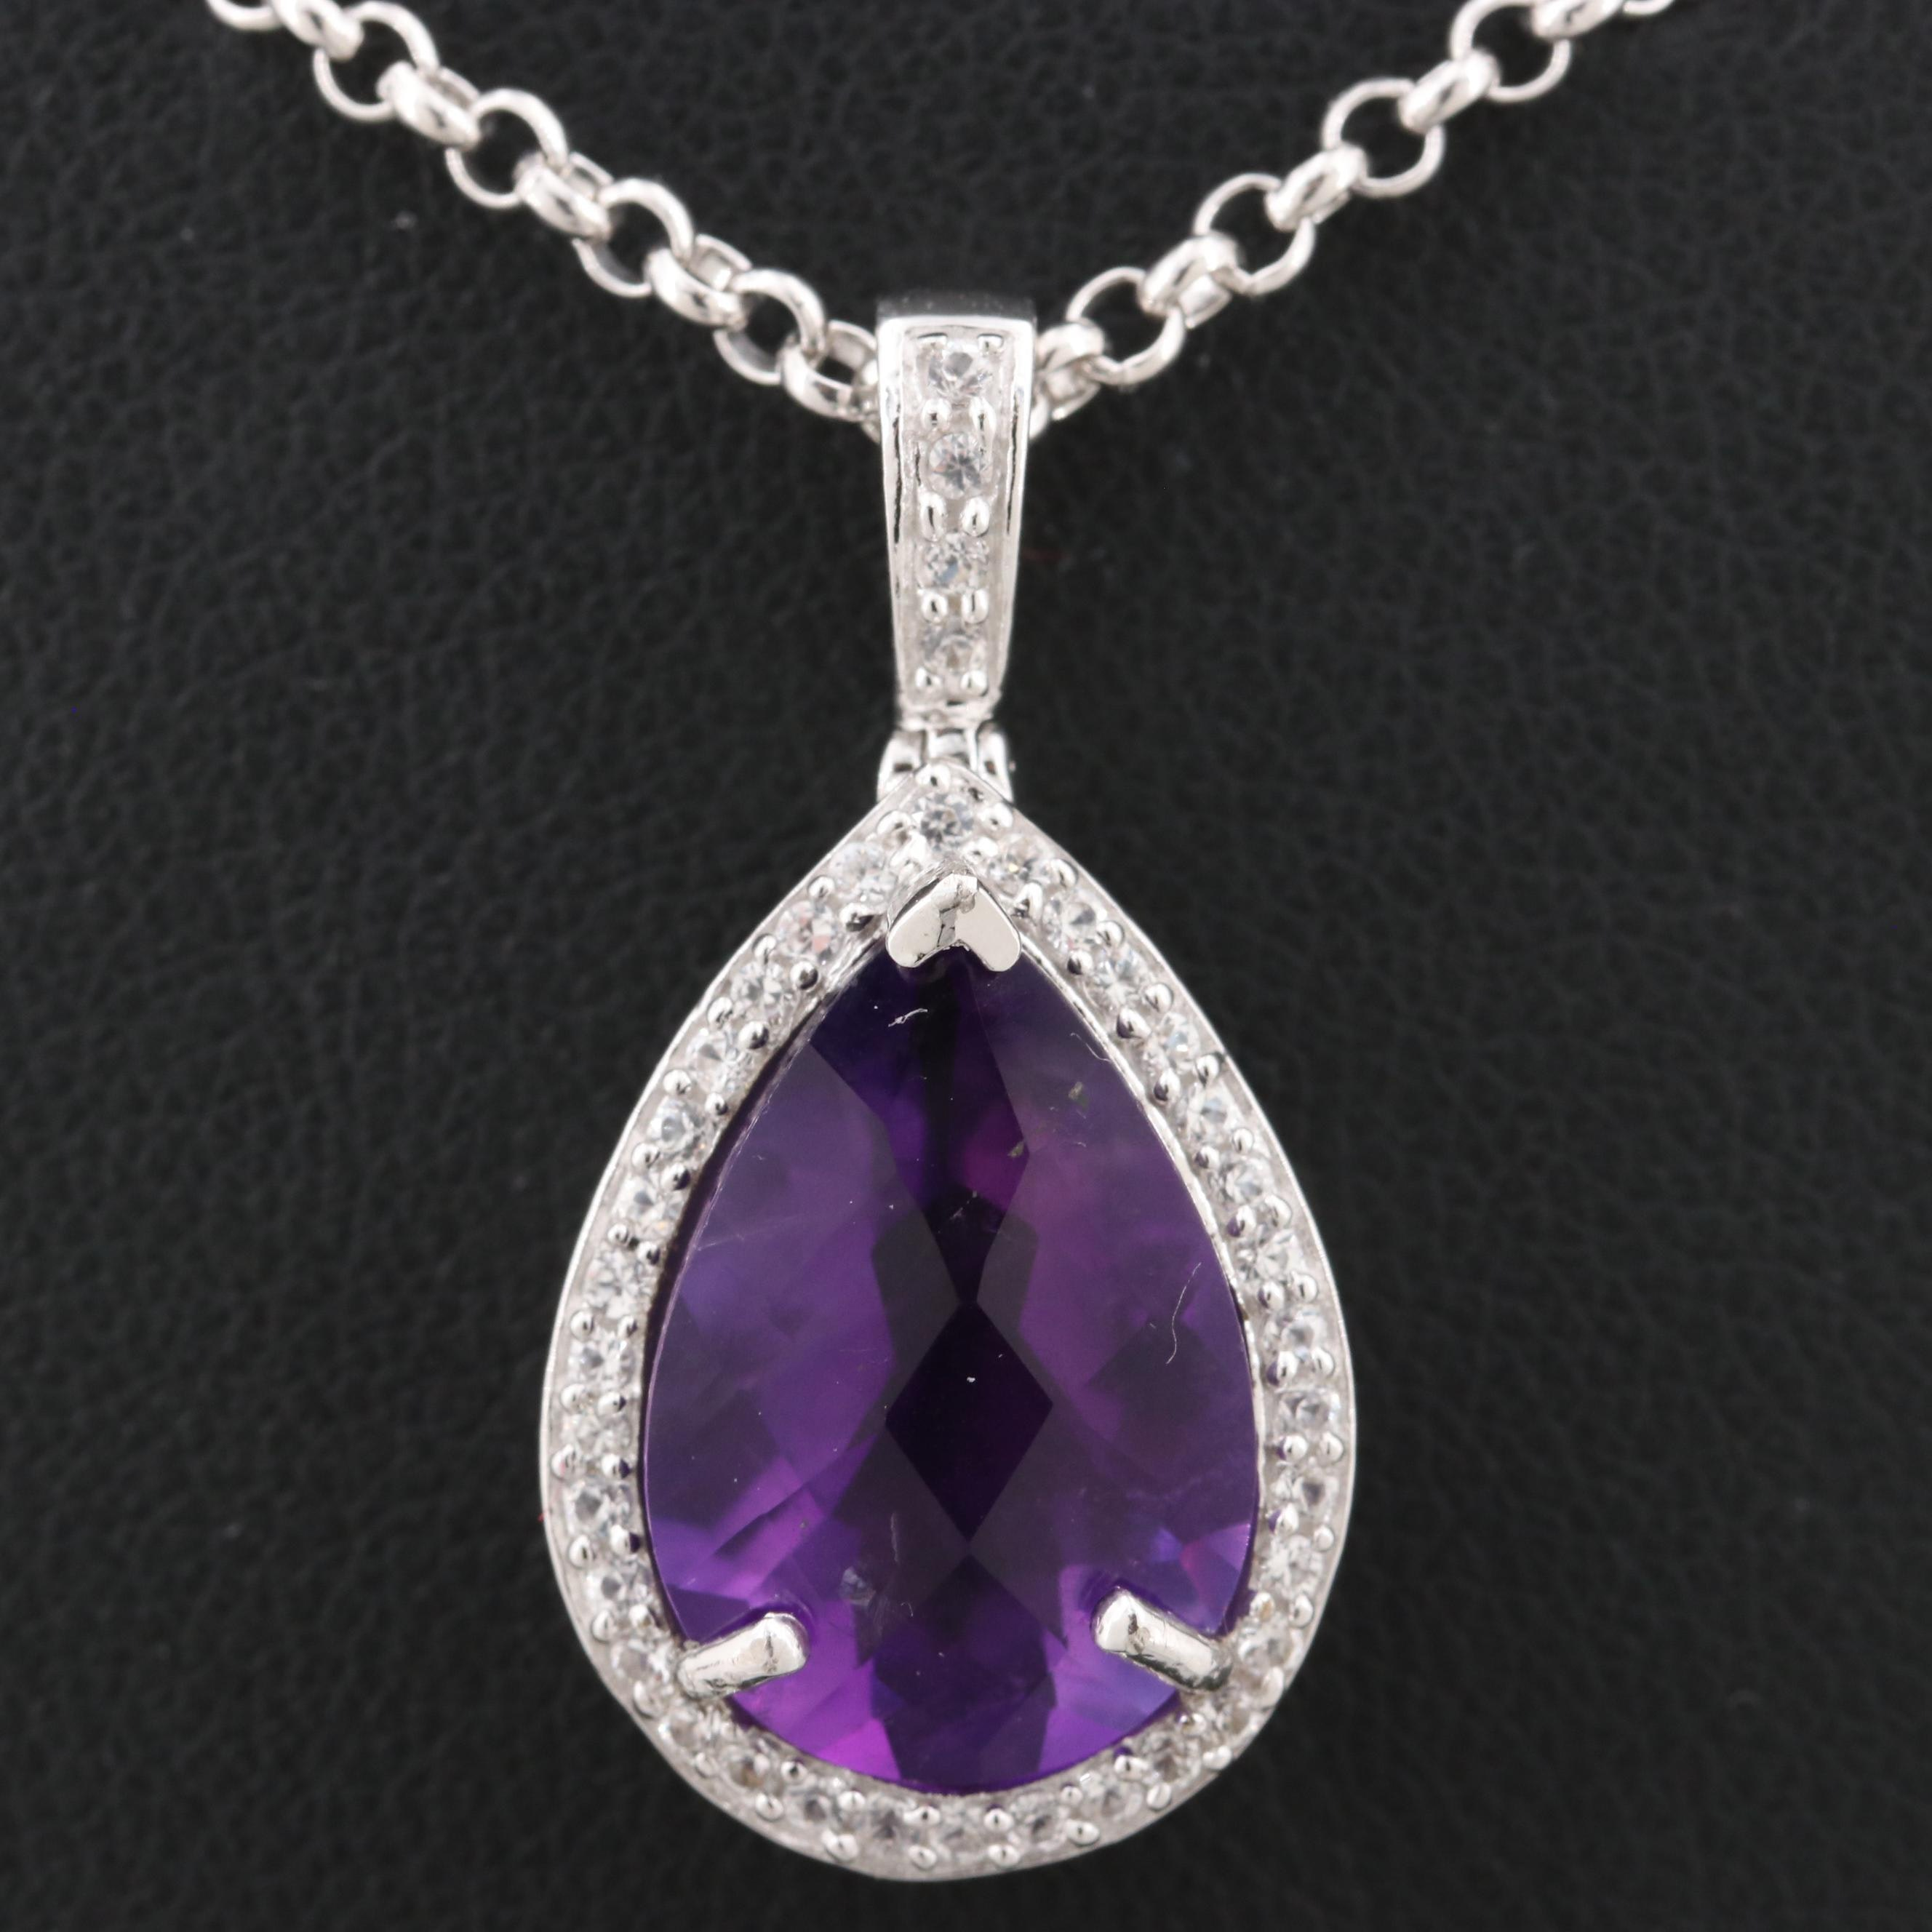 Sterling Silver Amethyst Pendant with Sterling Silver Chain Necklace